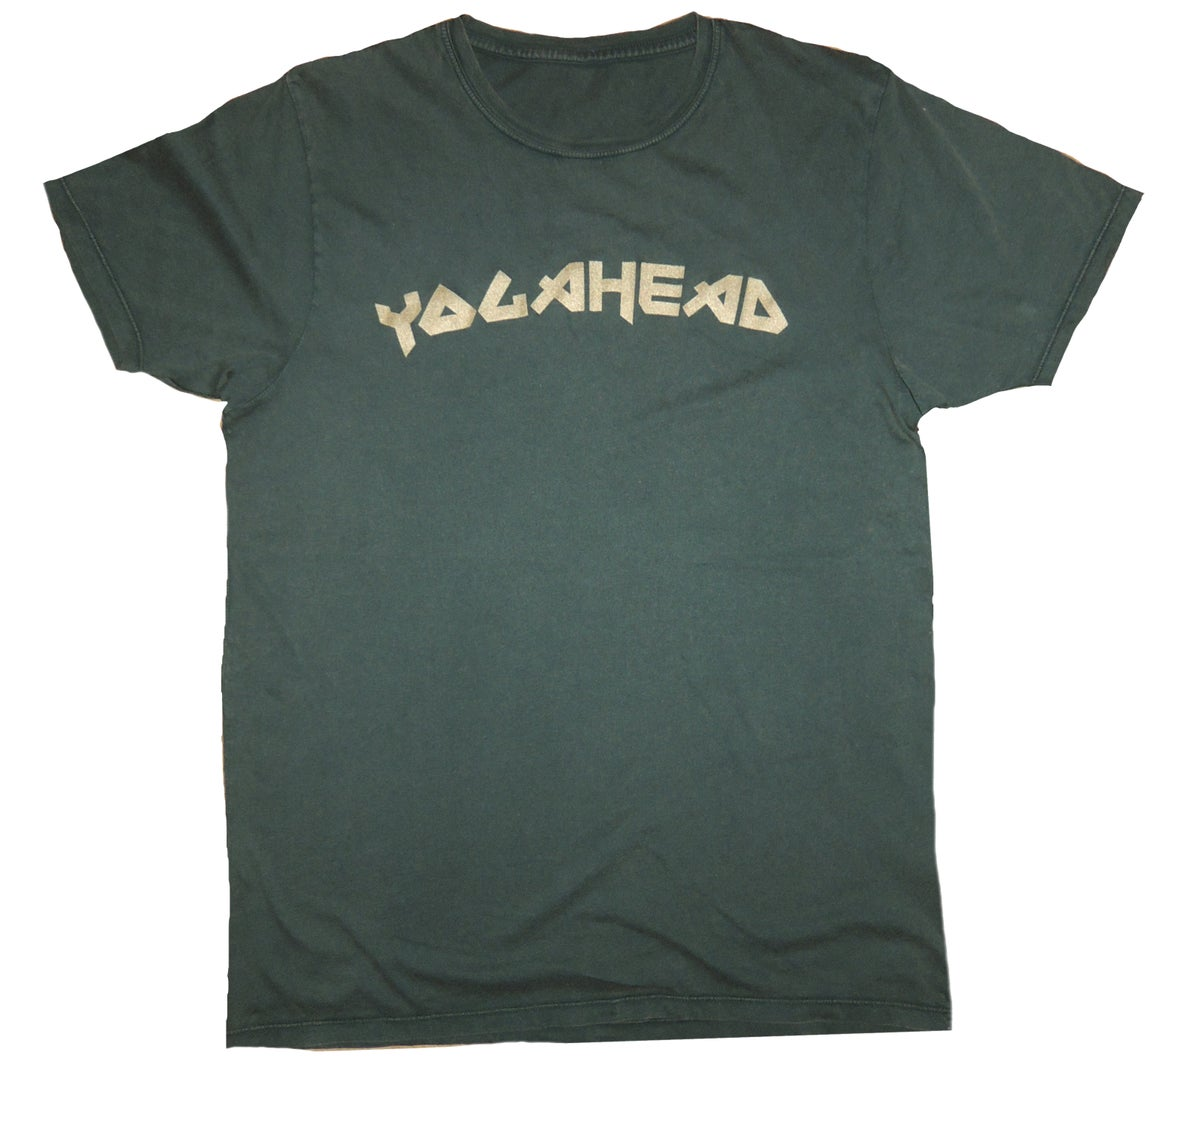 Recycled YogaHead T-shirt Gold/Khaki